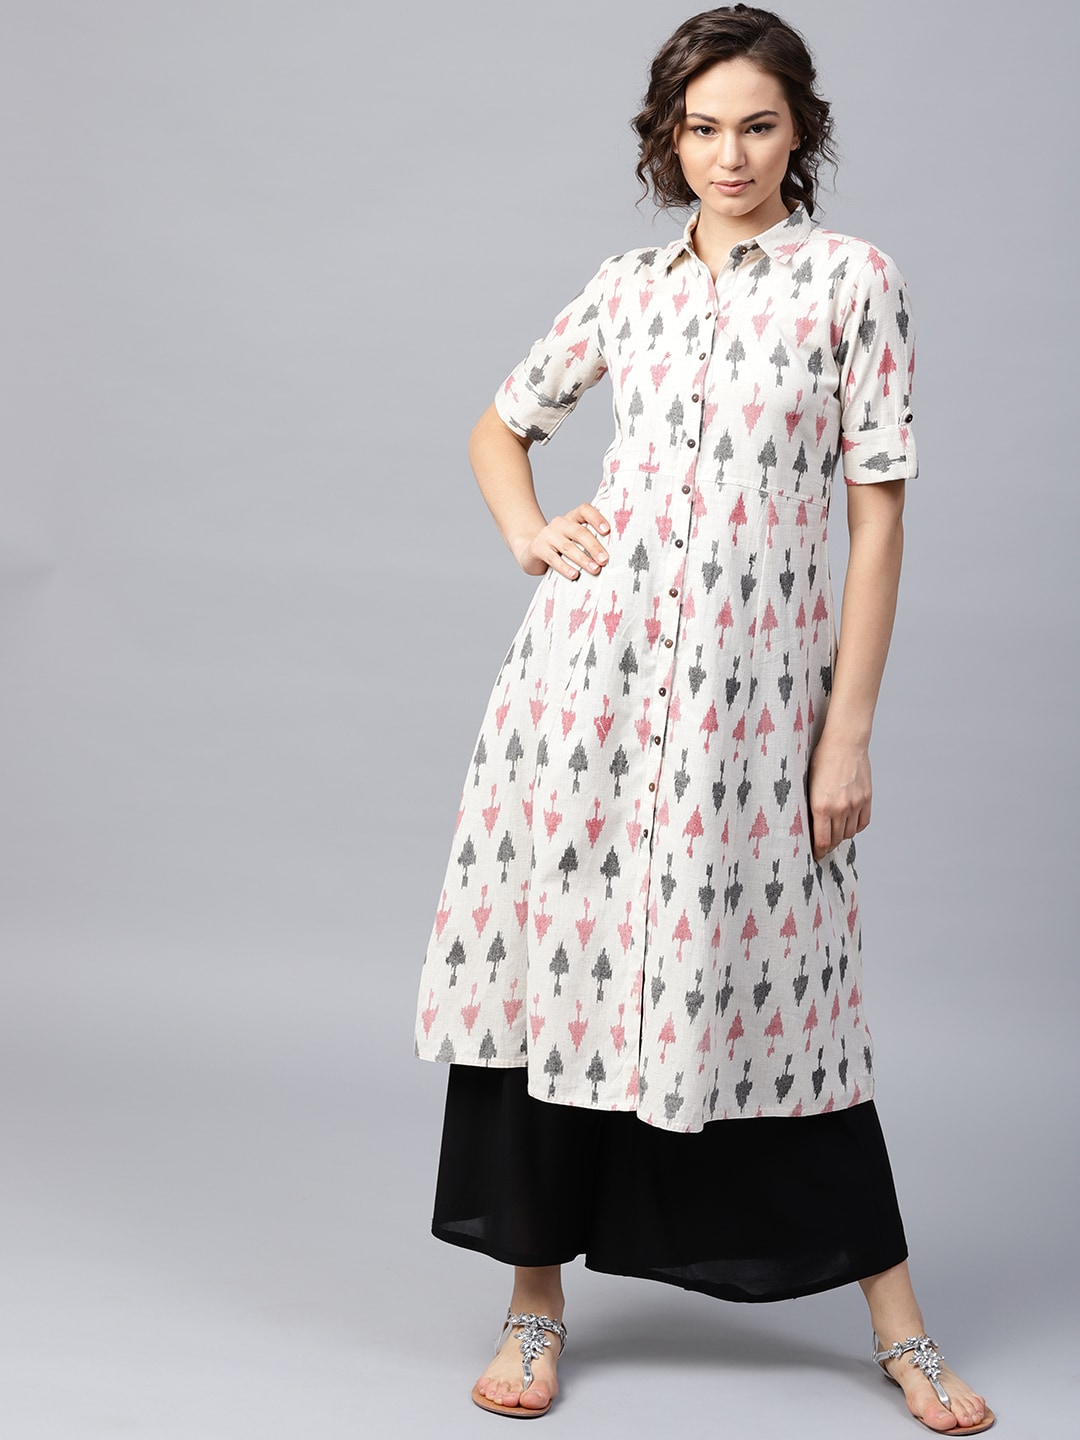 1415a6fa0806 Kurtis Online - Buy Designer Kurtis   Suits for Women - Myntra